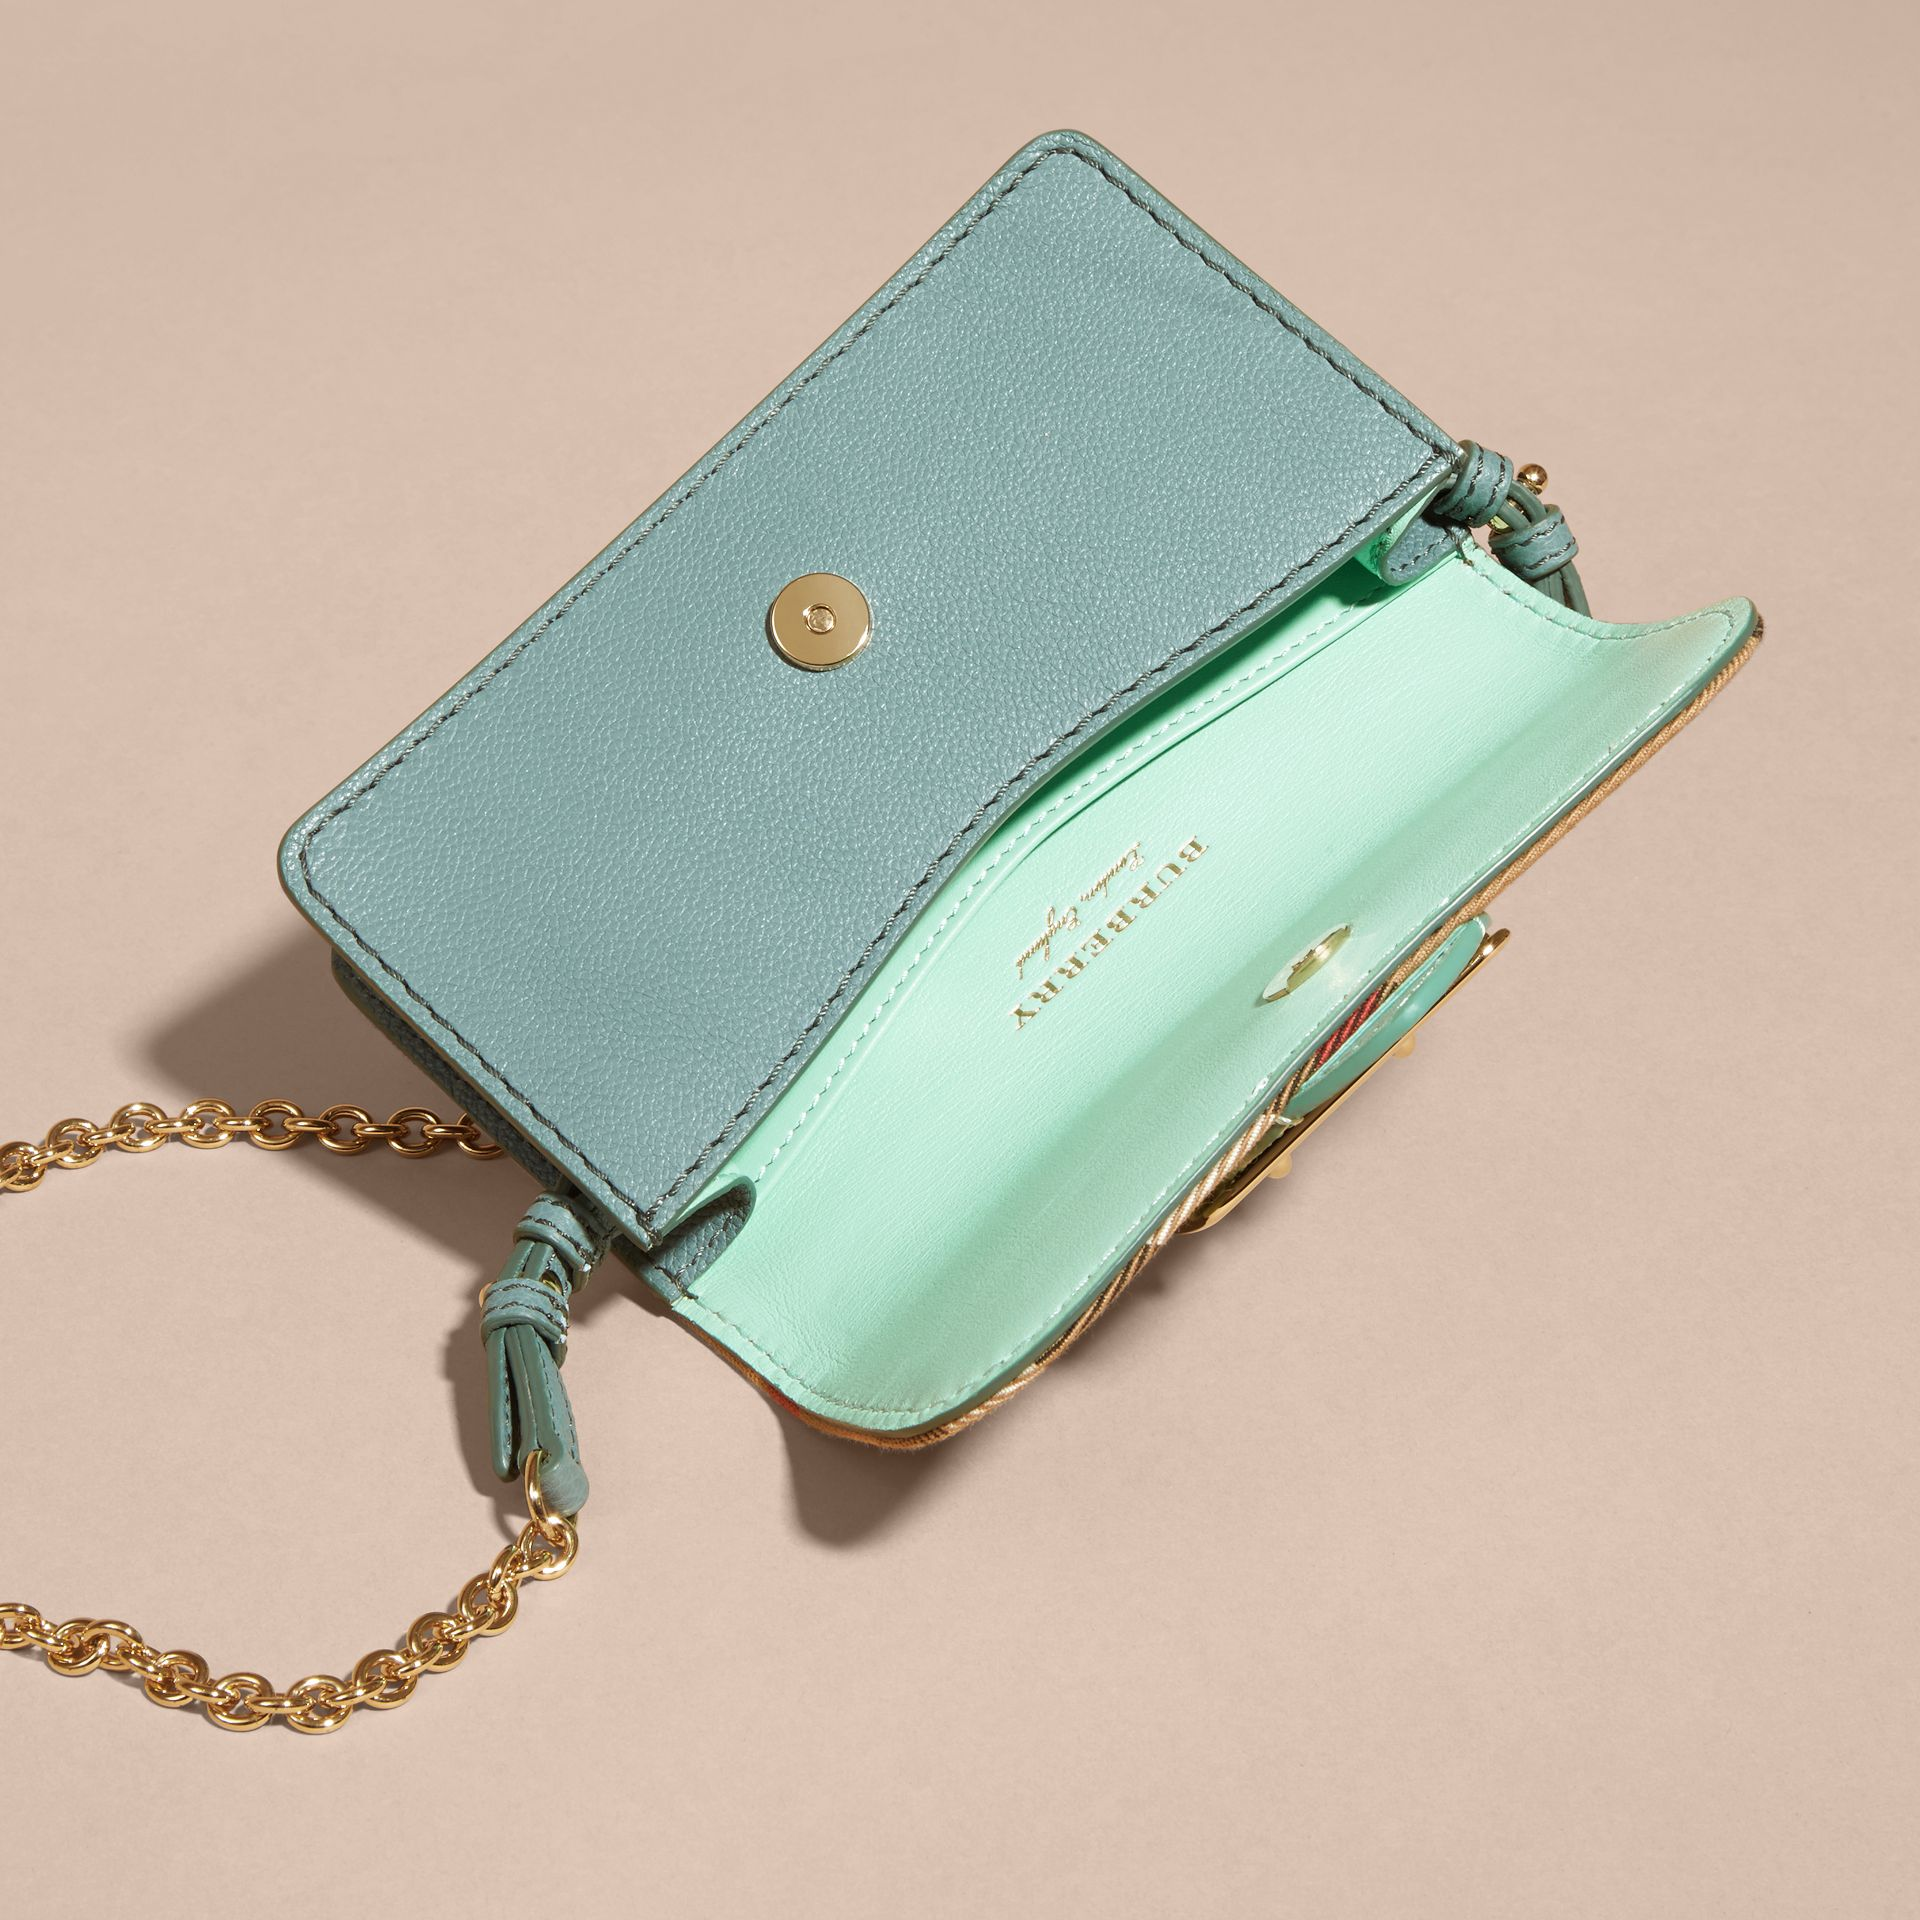 Menta chiaro Borsa The Buckle mini con pelle di serpente e motivo House check - immagine della galleria 5